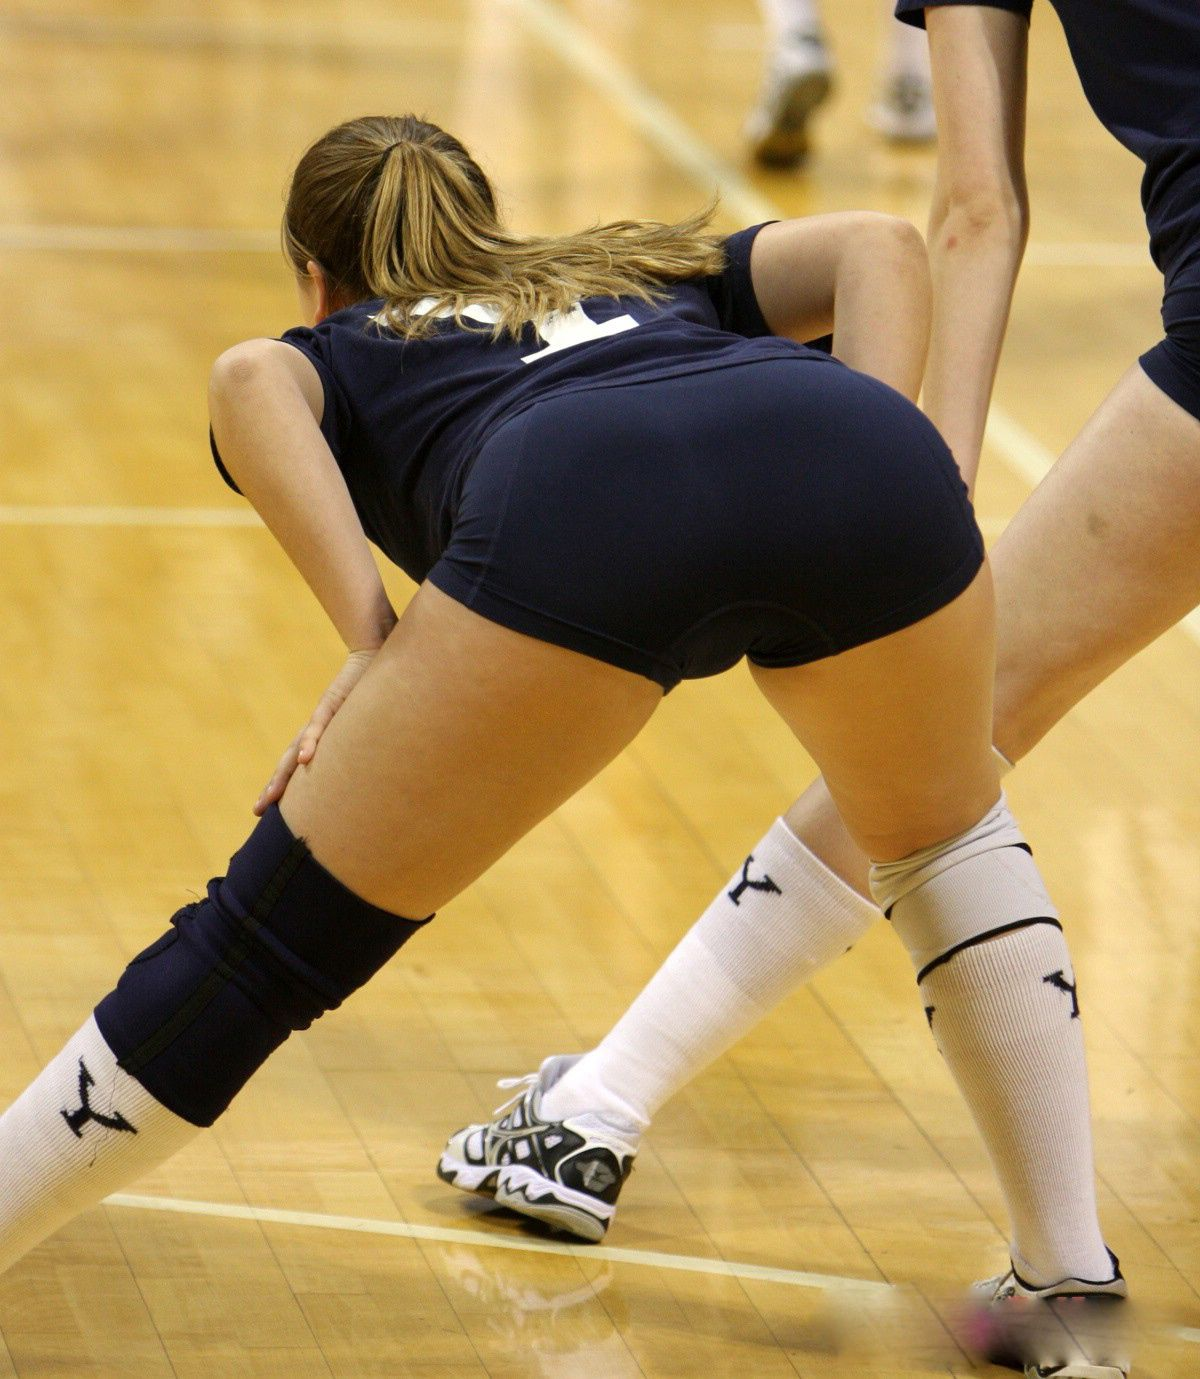 girls in volleyball shorts